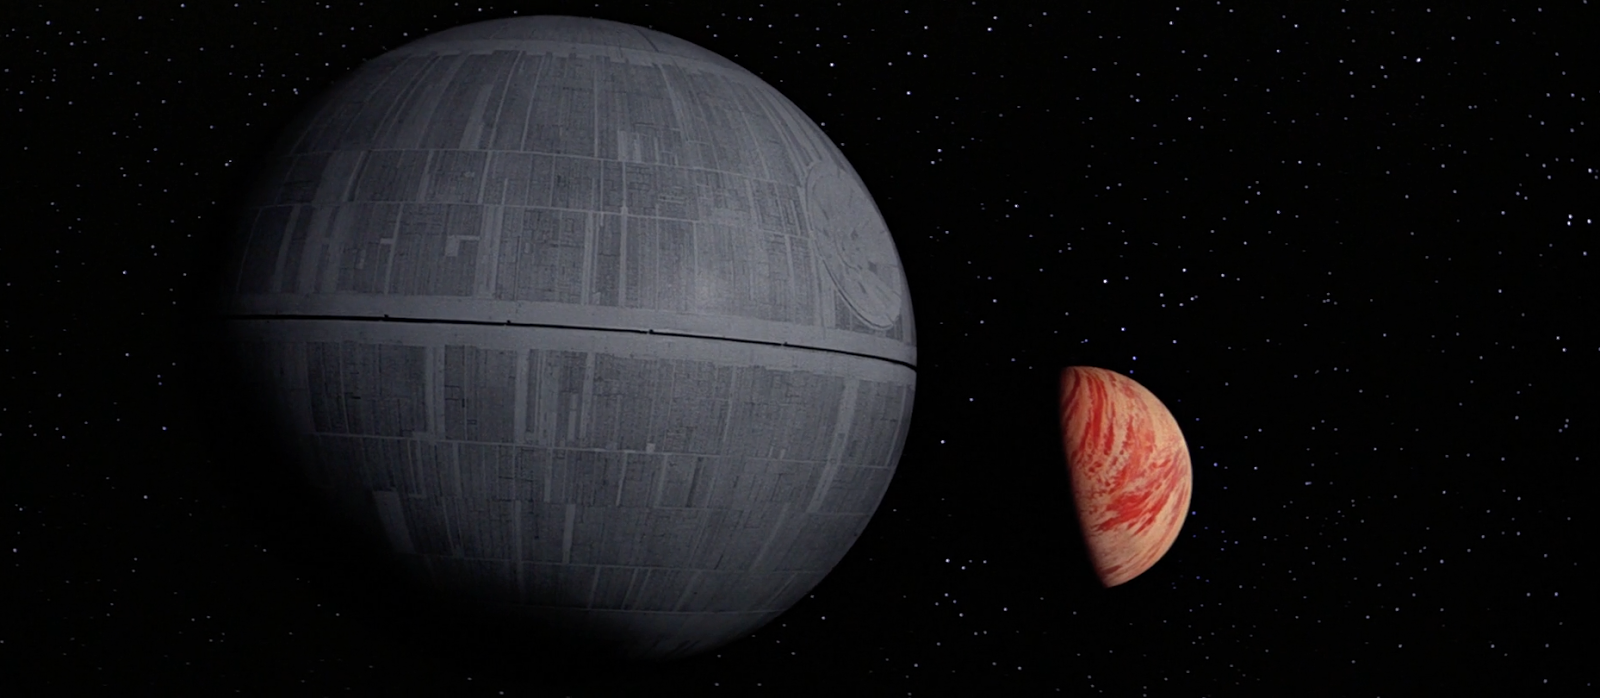 FXRant: The Death Star and the Final Trench Run